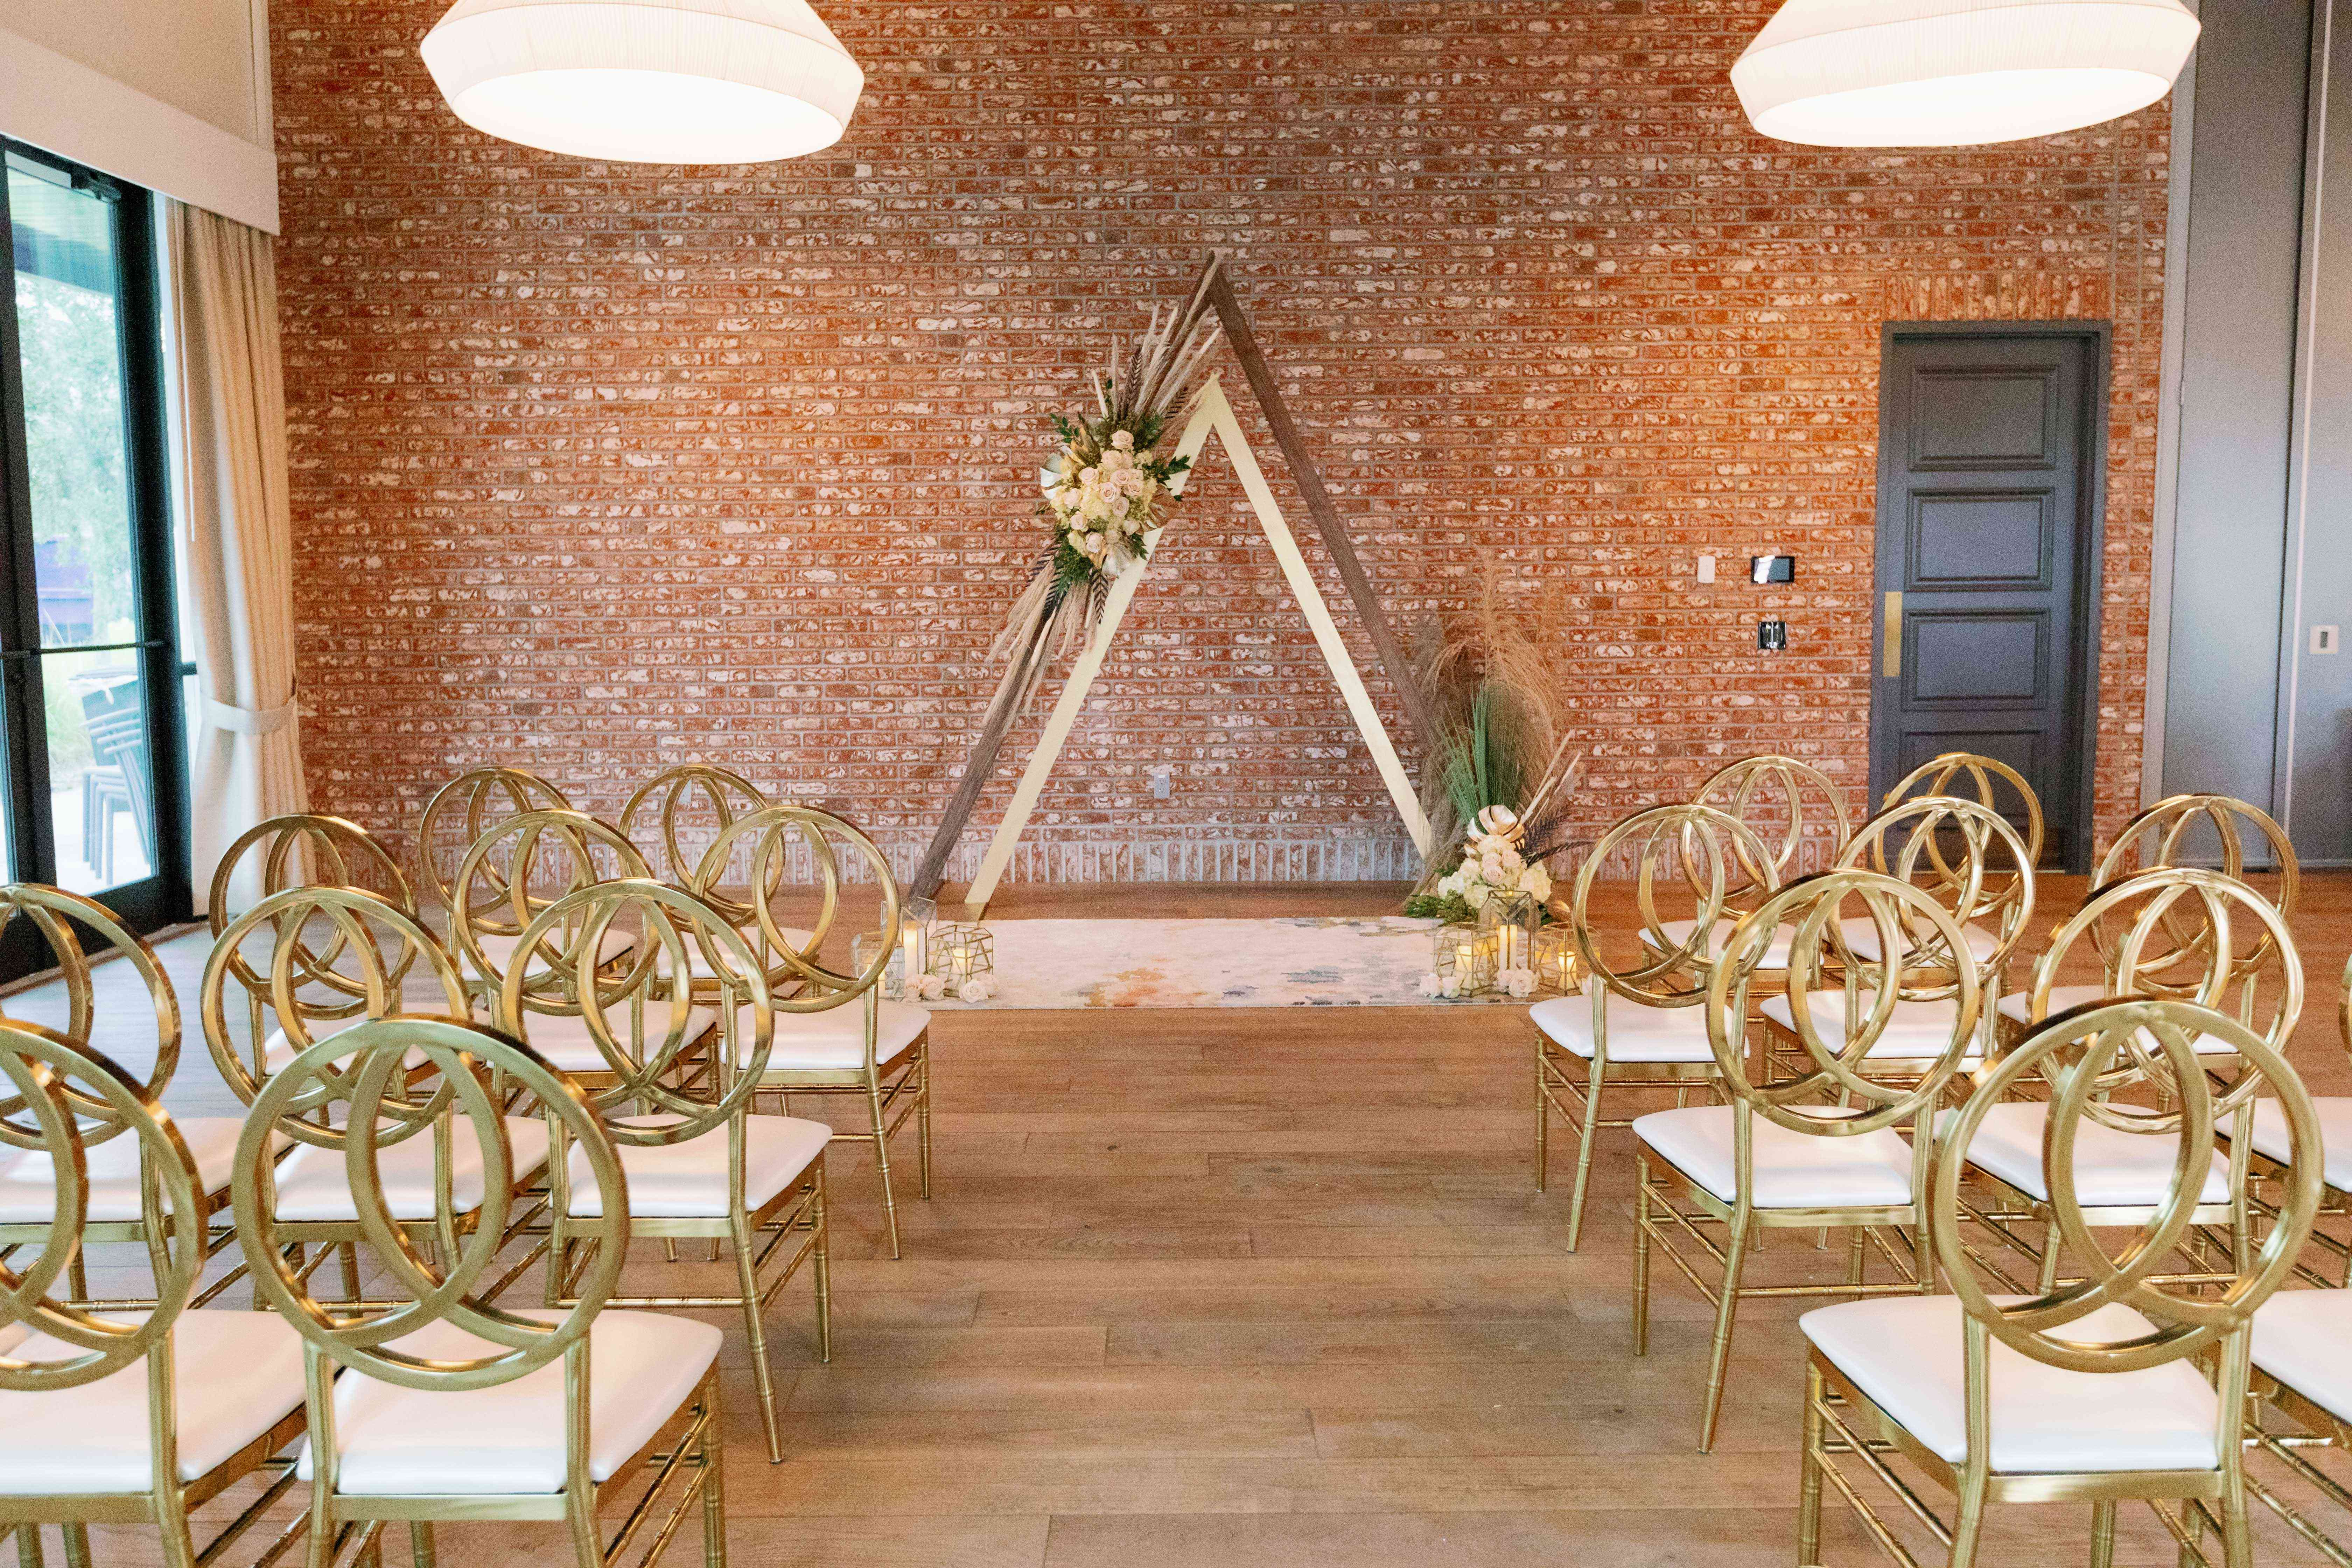 Ceremony space with exposed brick wall at Dockside Lake Nona wedding venue